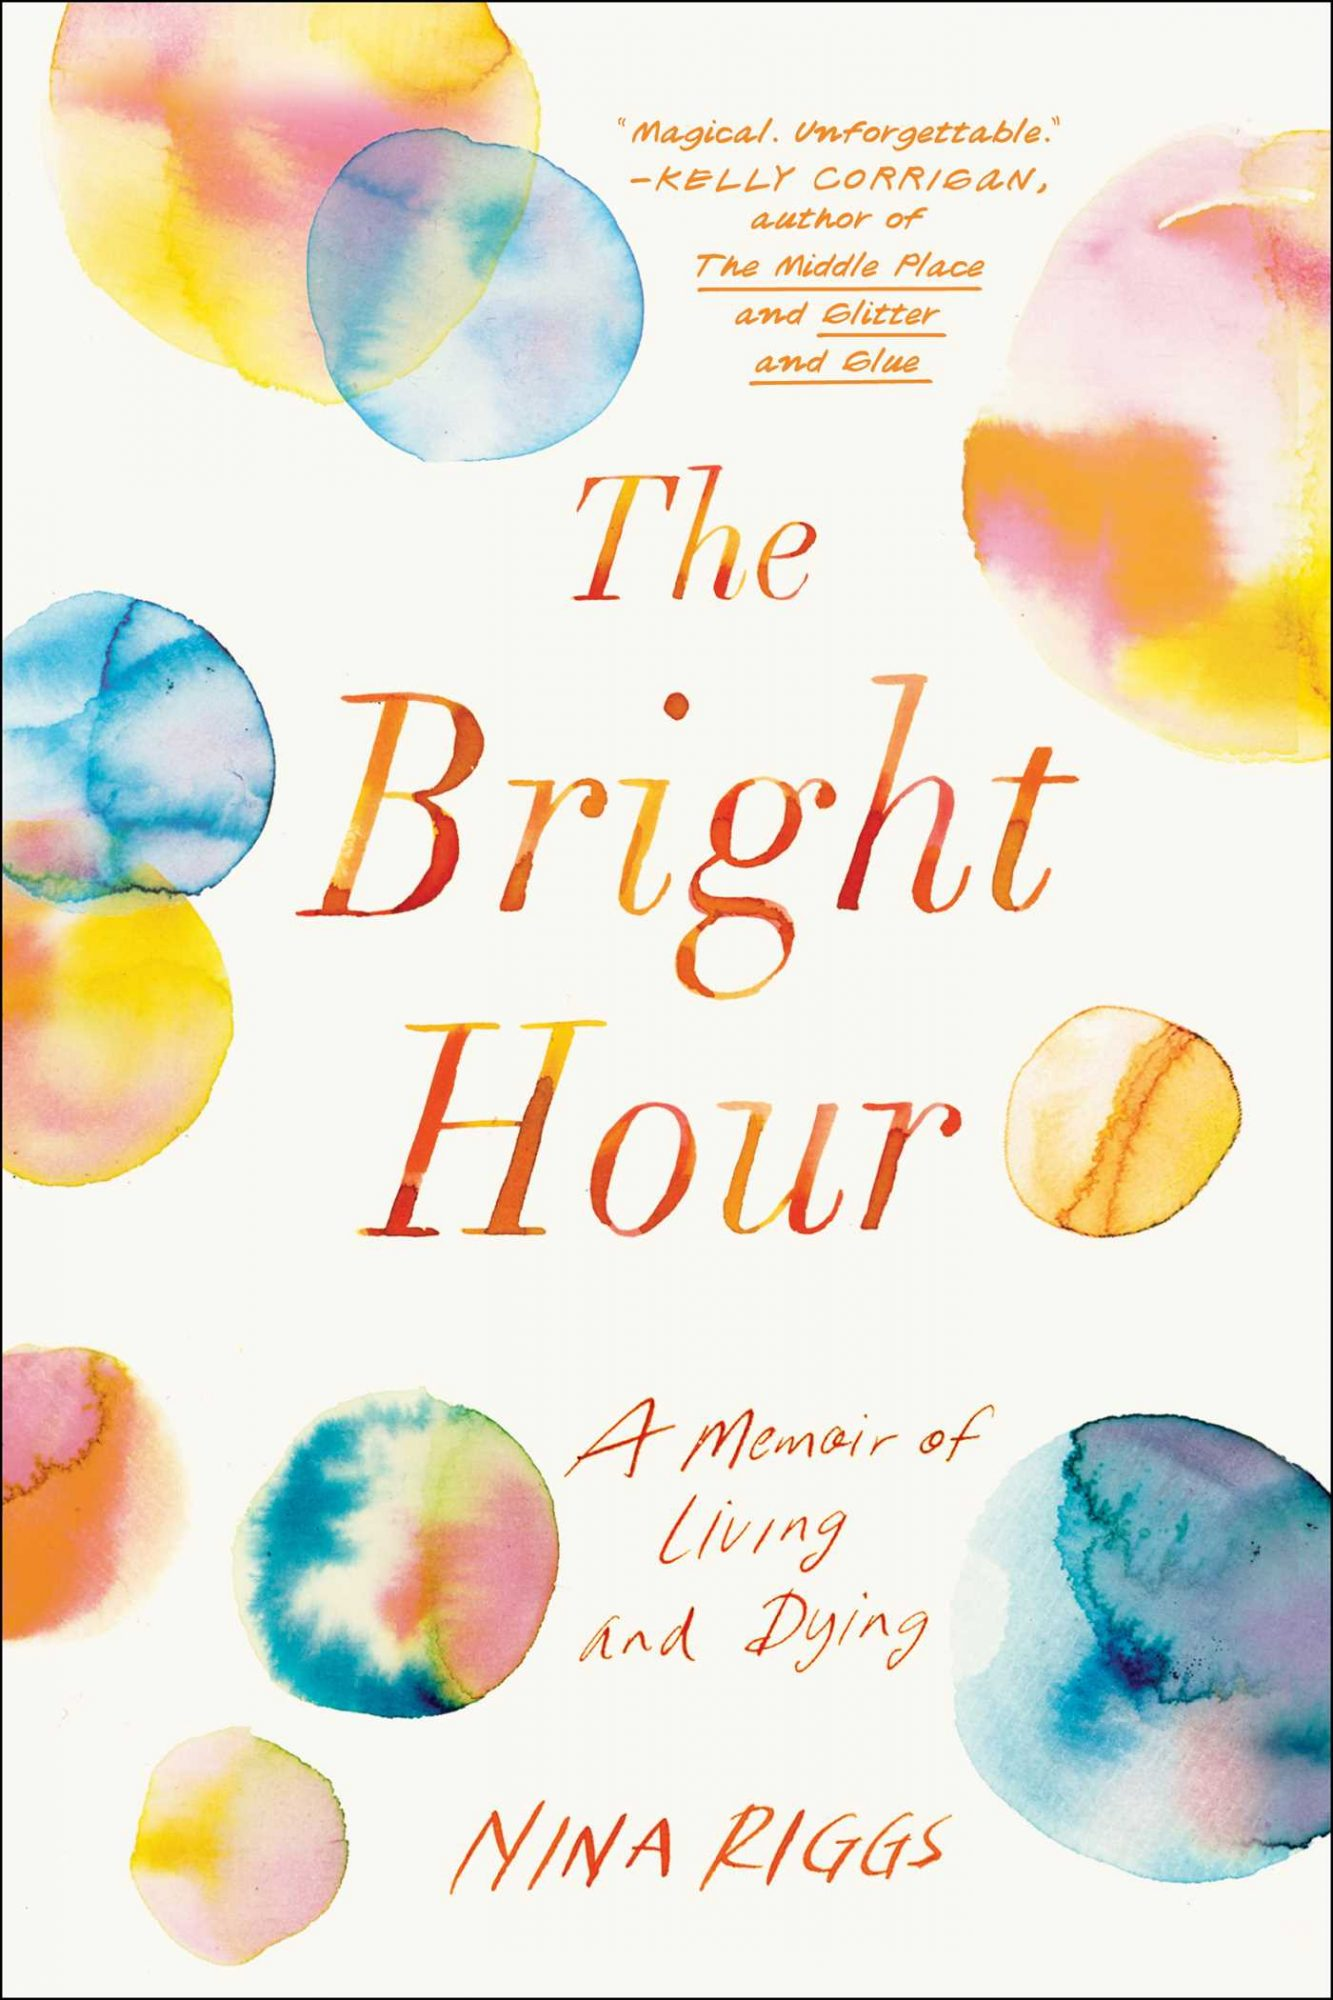 The Bright Hour: A Memoir of Living and Dying by Nina Riggs